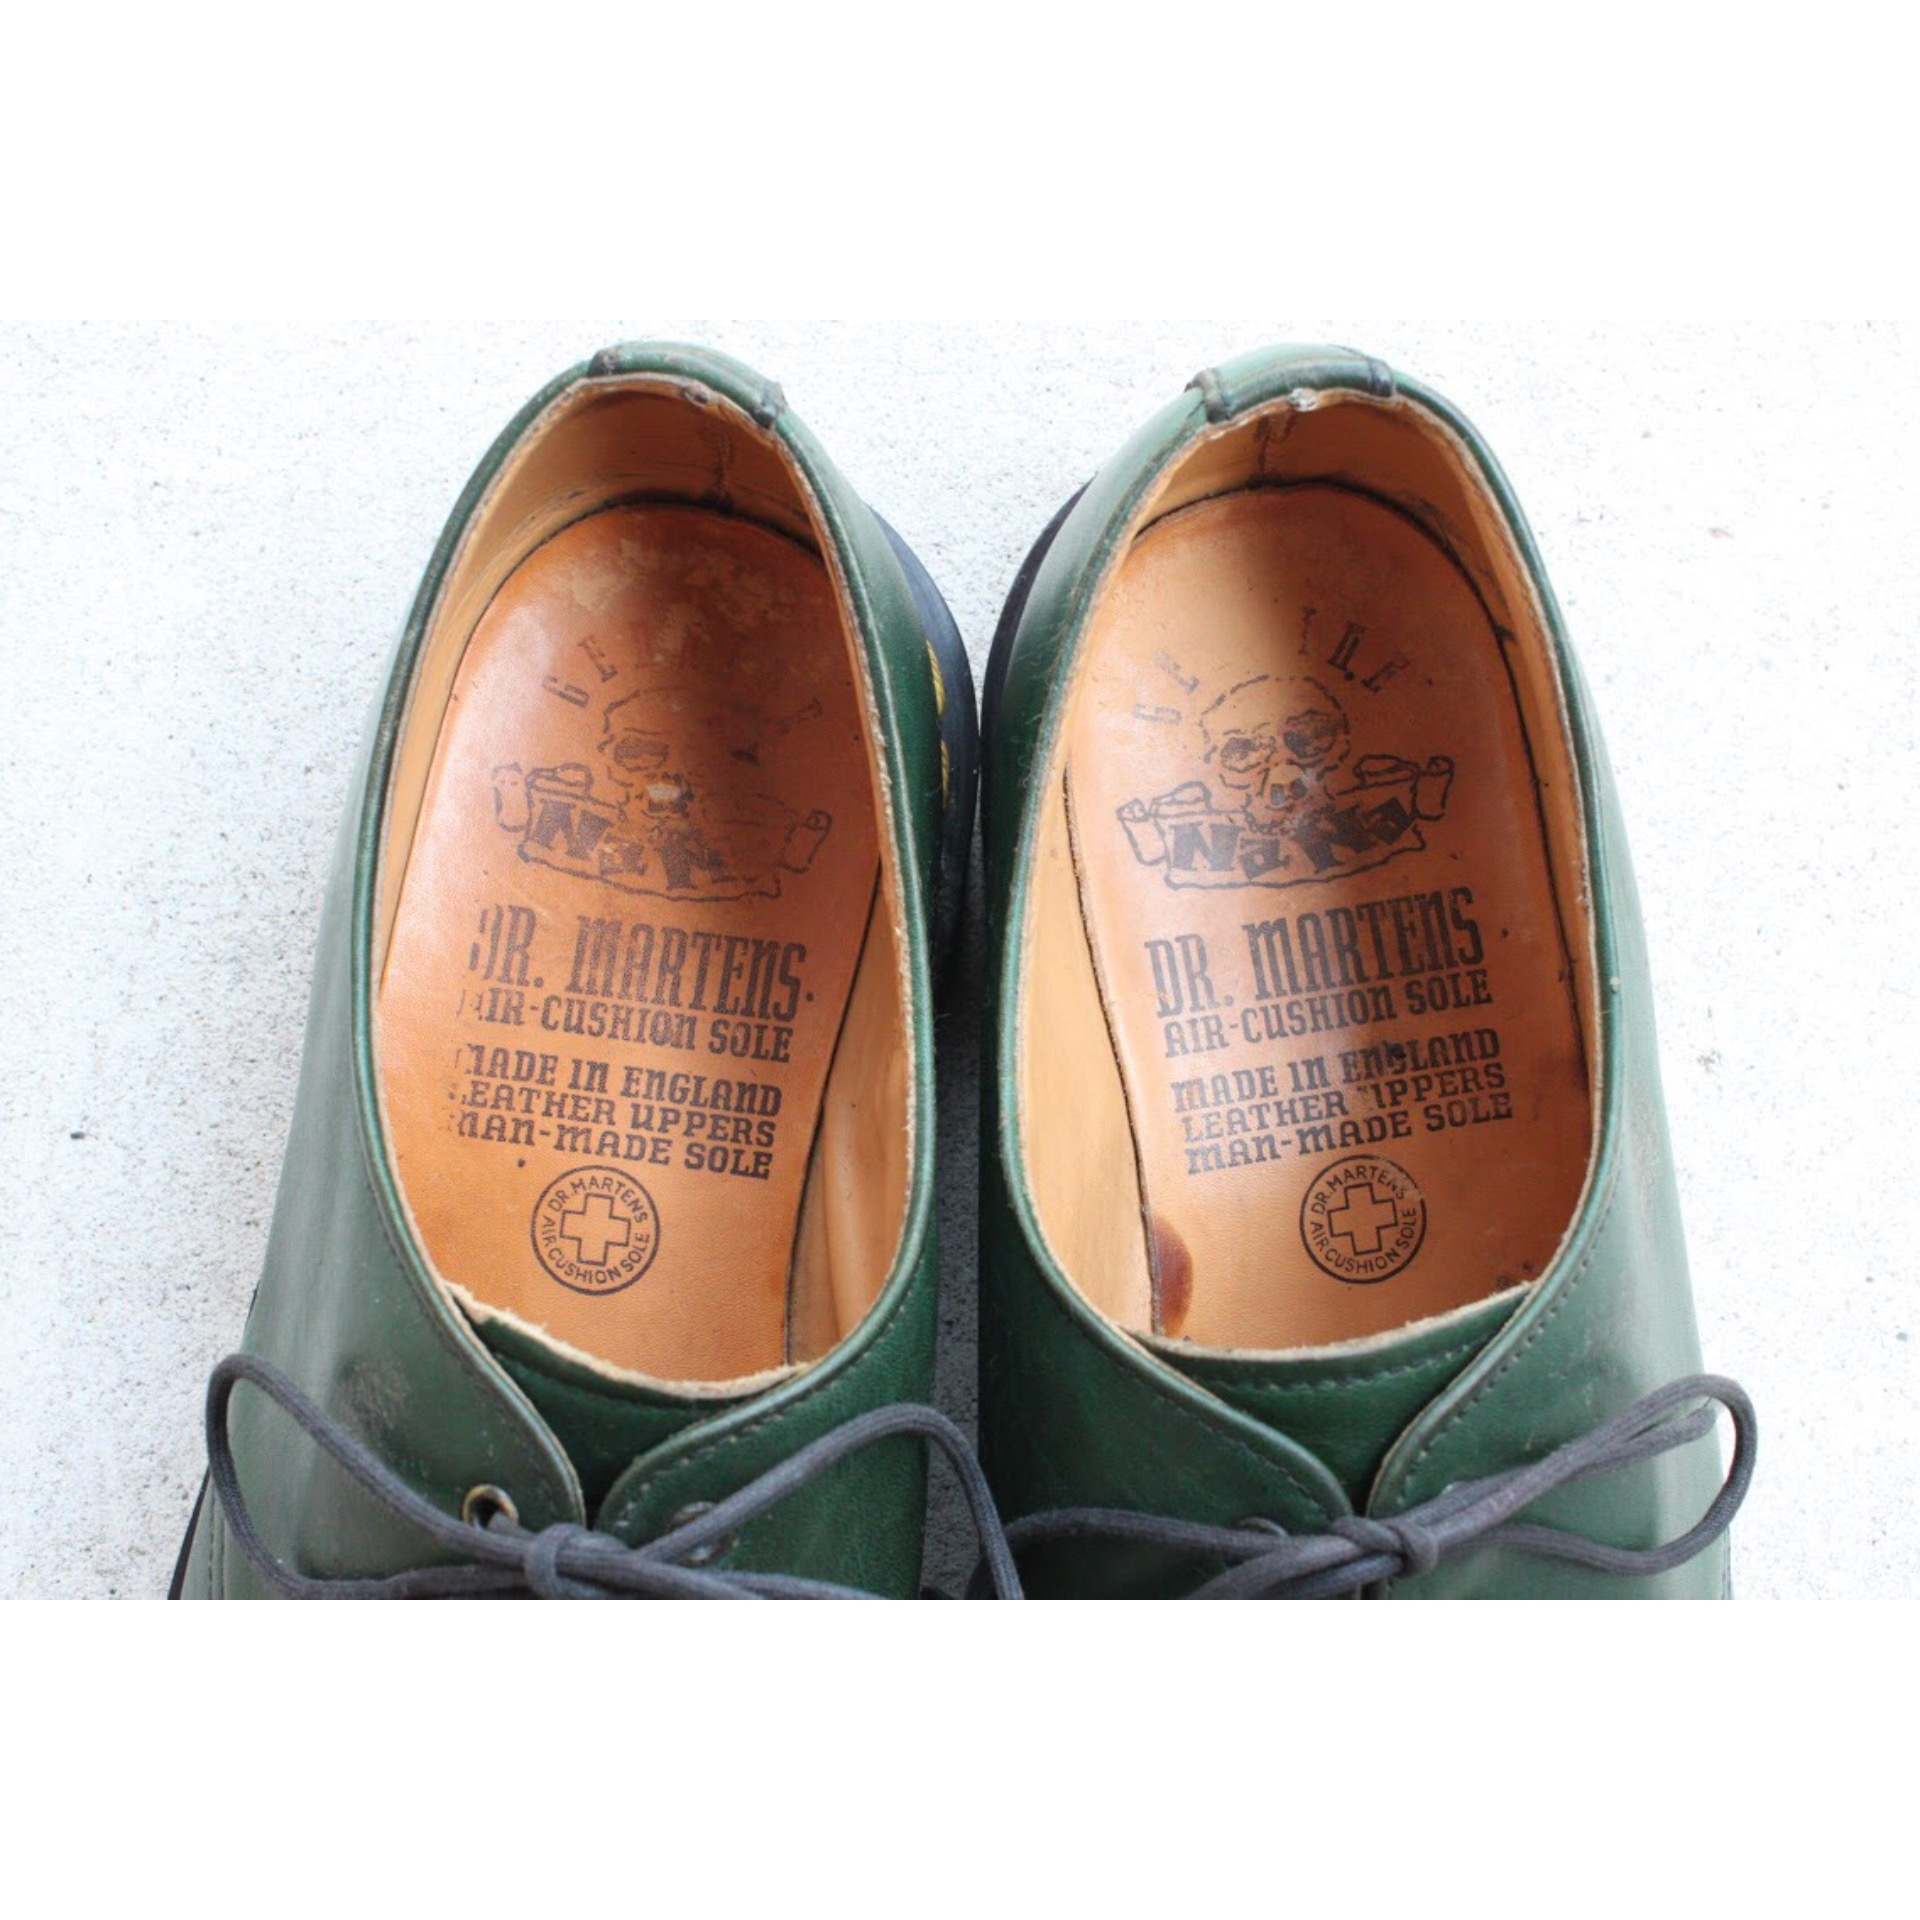 Dr. Martens 3 hole Made in England size 10